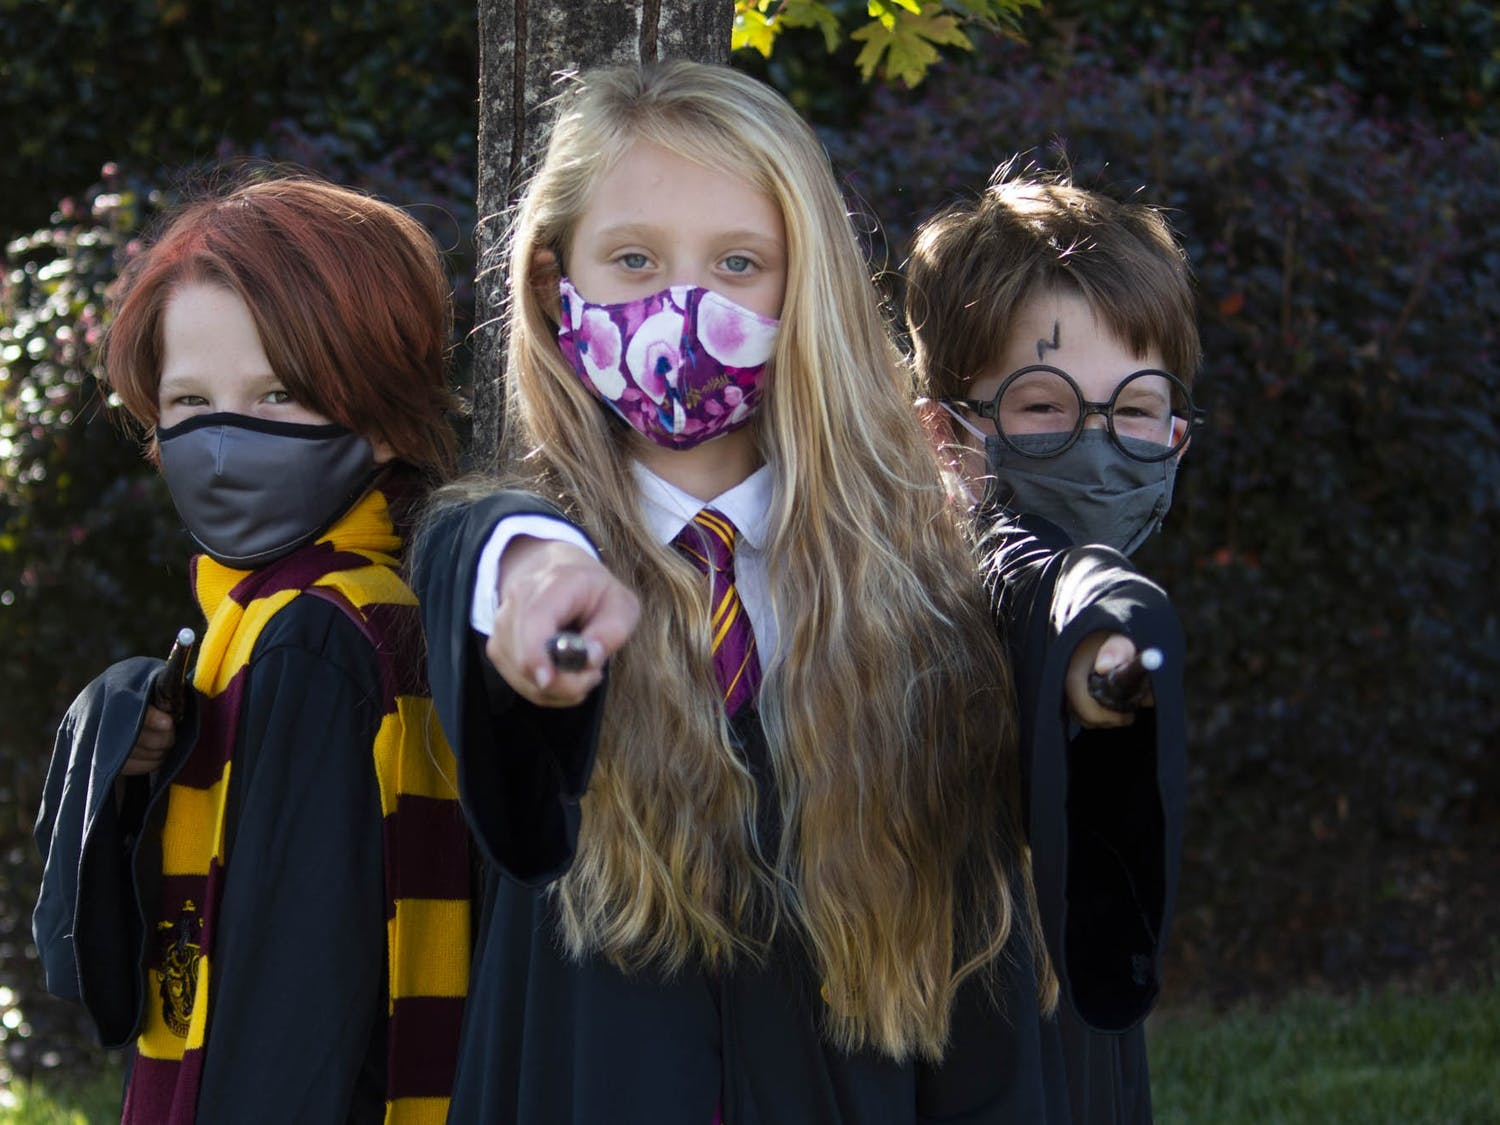 From left to right: Evan, nine, Amelia, eight and a half, and Will, nine, point their wands in preparation for Halloween night in Durham on Thursday, Oct. 22, 2020. The three, who have all known each other their whole lives, will be going as Harry, Hermione and Ron from Harry Potter. Amelia lives across the street from Evan and Will, who are identical twins and just five and a half months older than Amelia. They all agreed that they are most excited to get candy and play corn hole on Halloween.